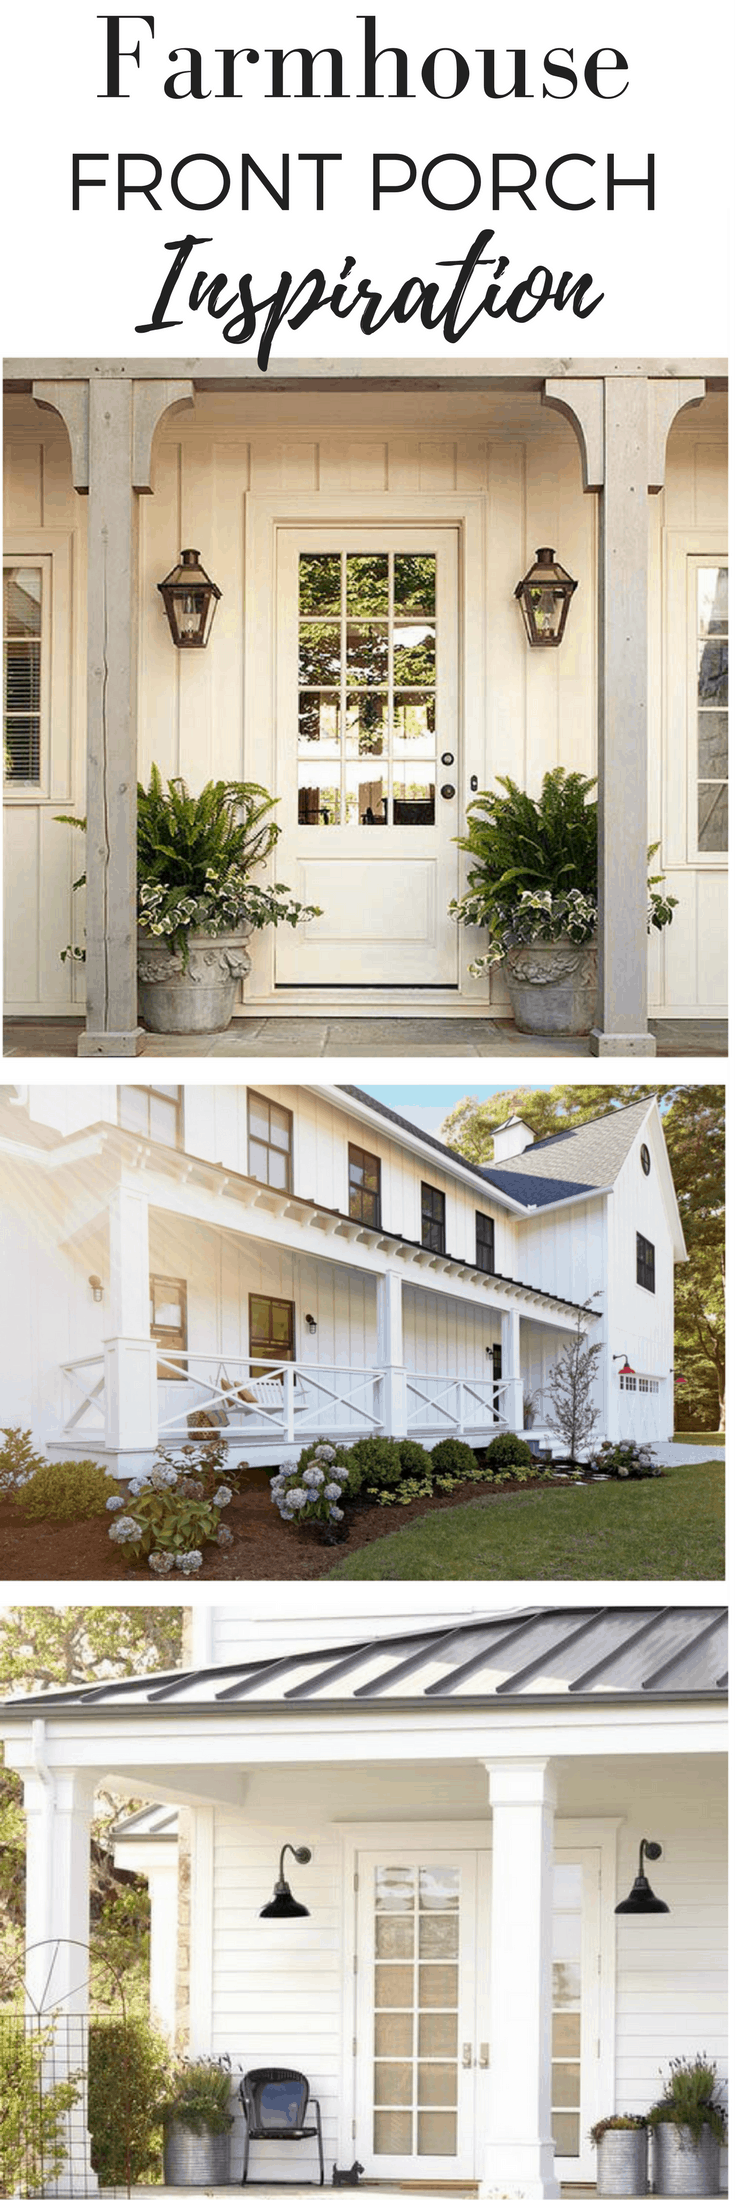 Curb Appeal Makeover With Lowe's- Before Pictures and Inspiration - Farmhouse on Boone